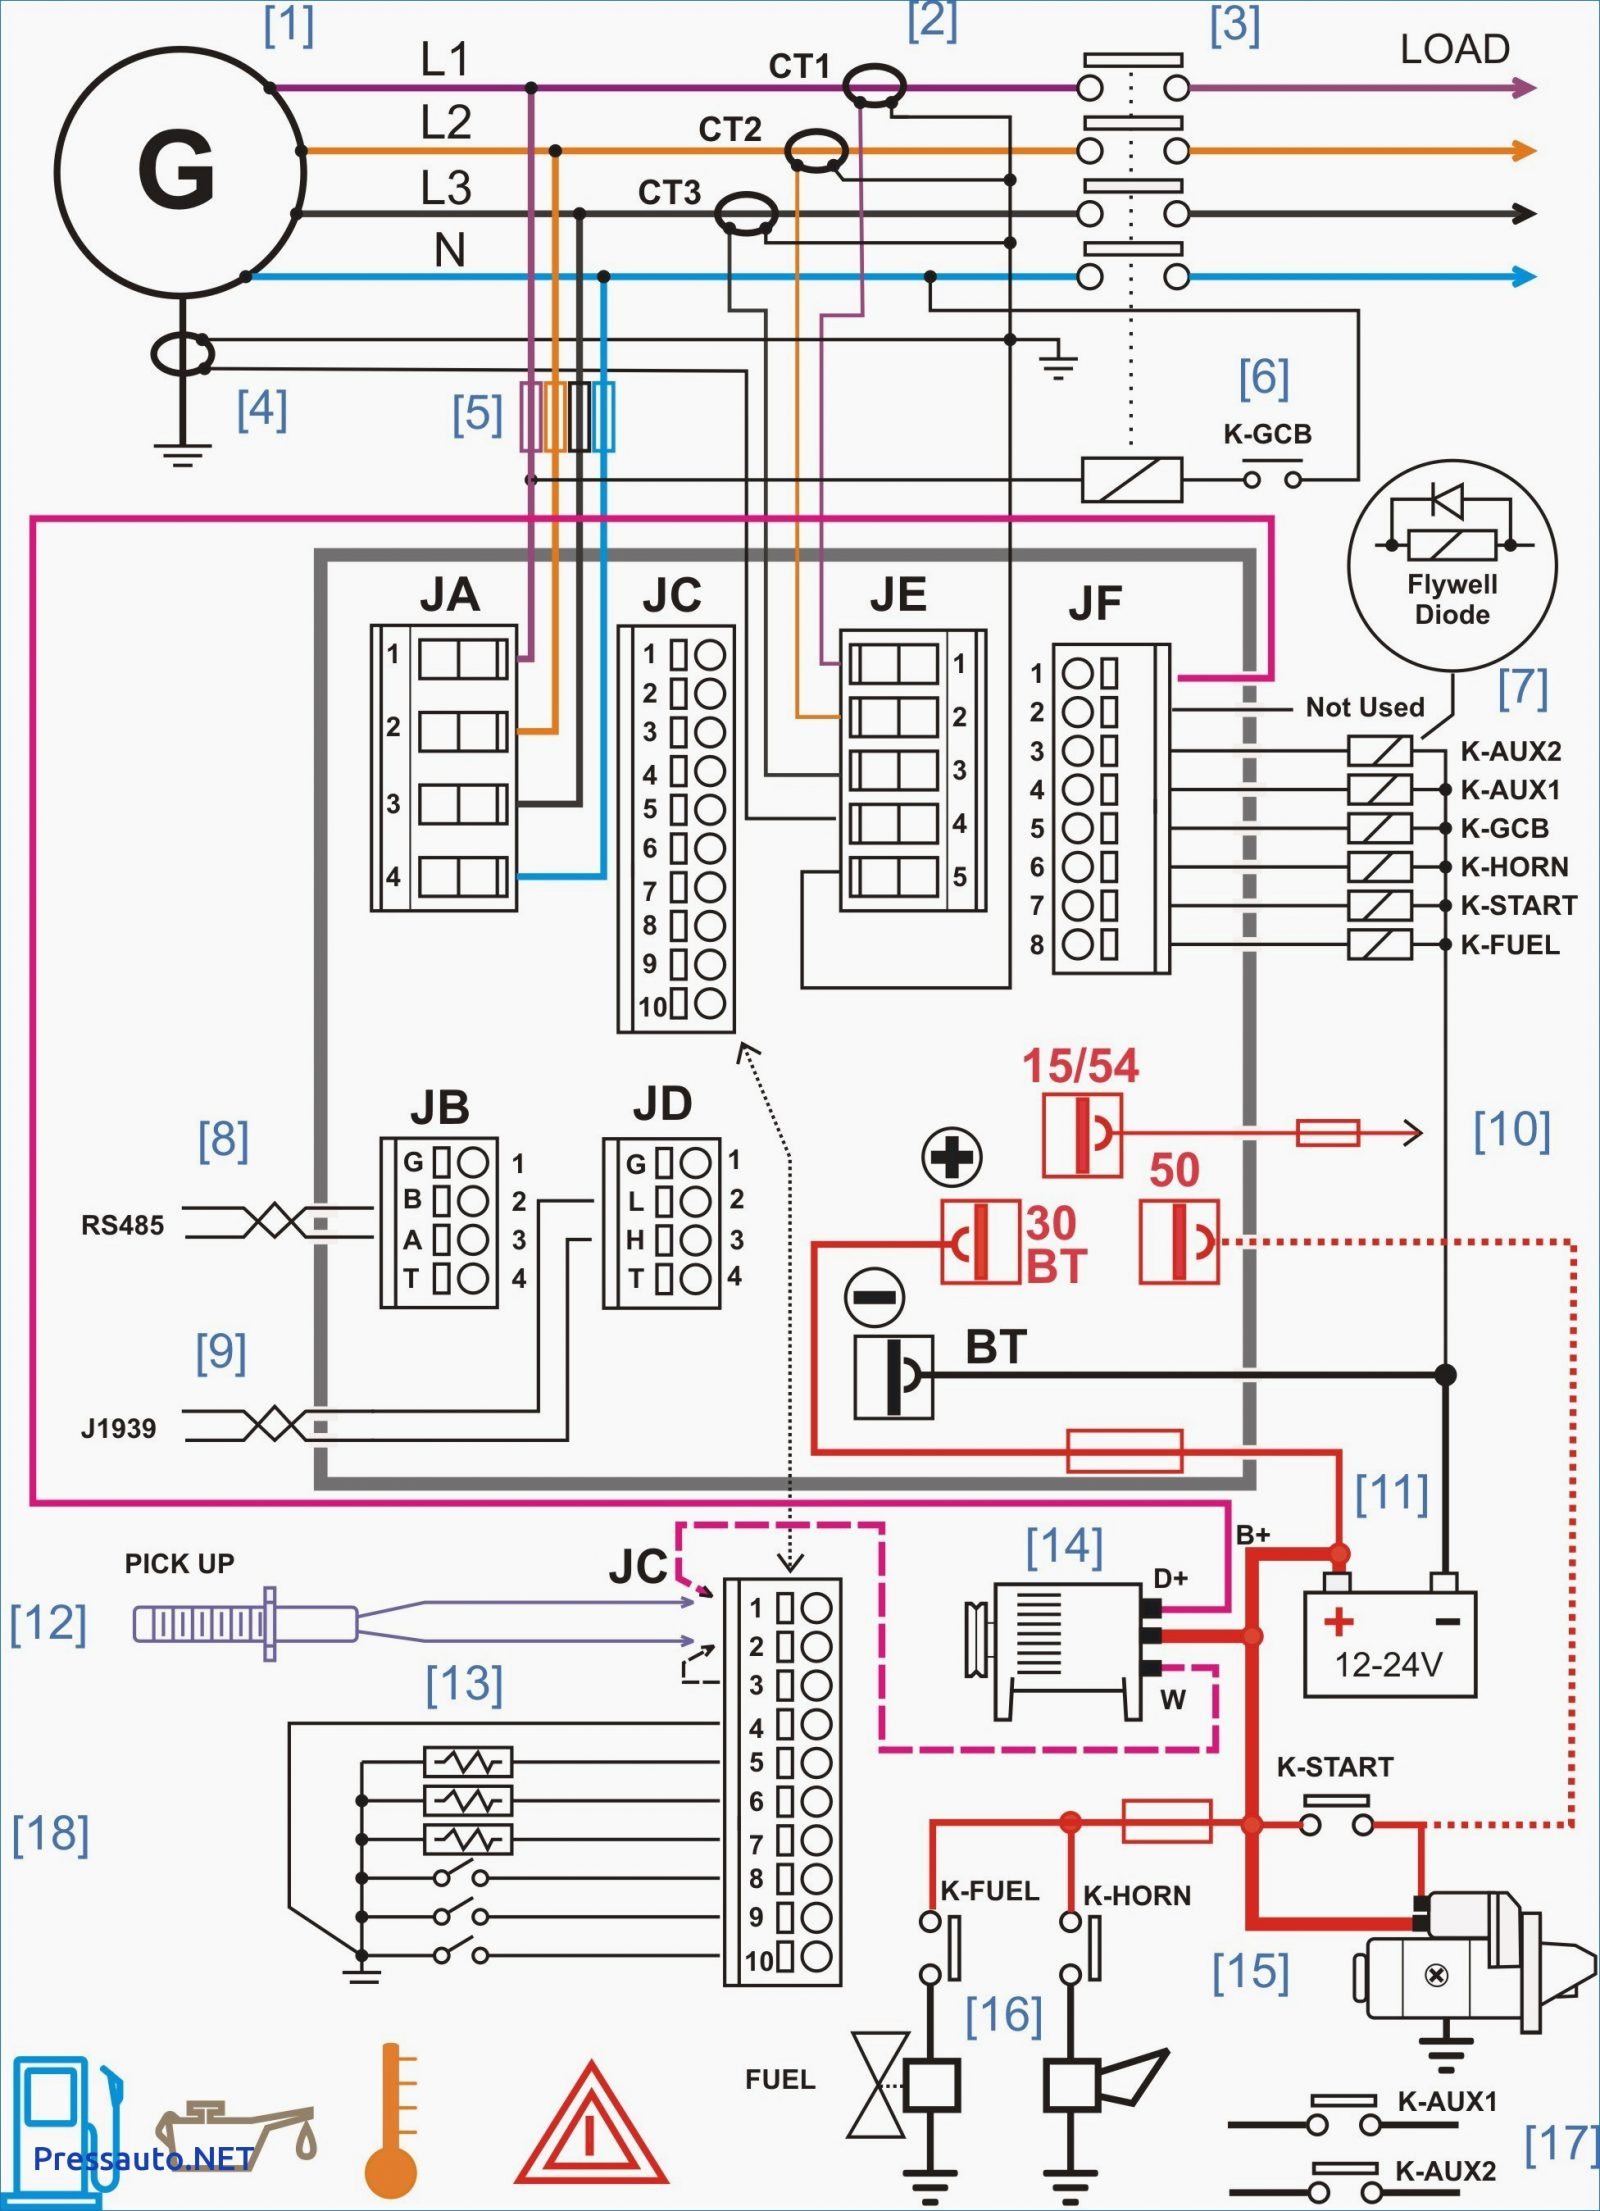 200 amp automatic transfer switch wiring diagram Download-Asco 7000 Series Automatic Transfer Switch Wiring Diagram New Diagramuto Transfer Switchts Workingnd Control Panel Wiring 8-d